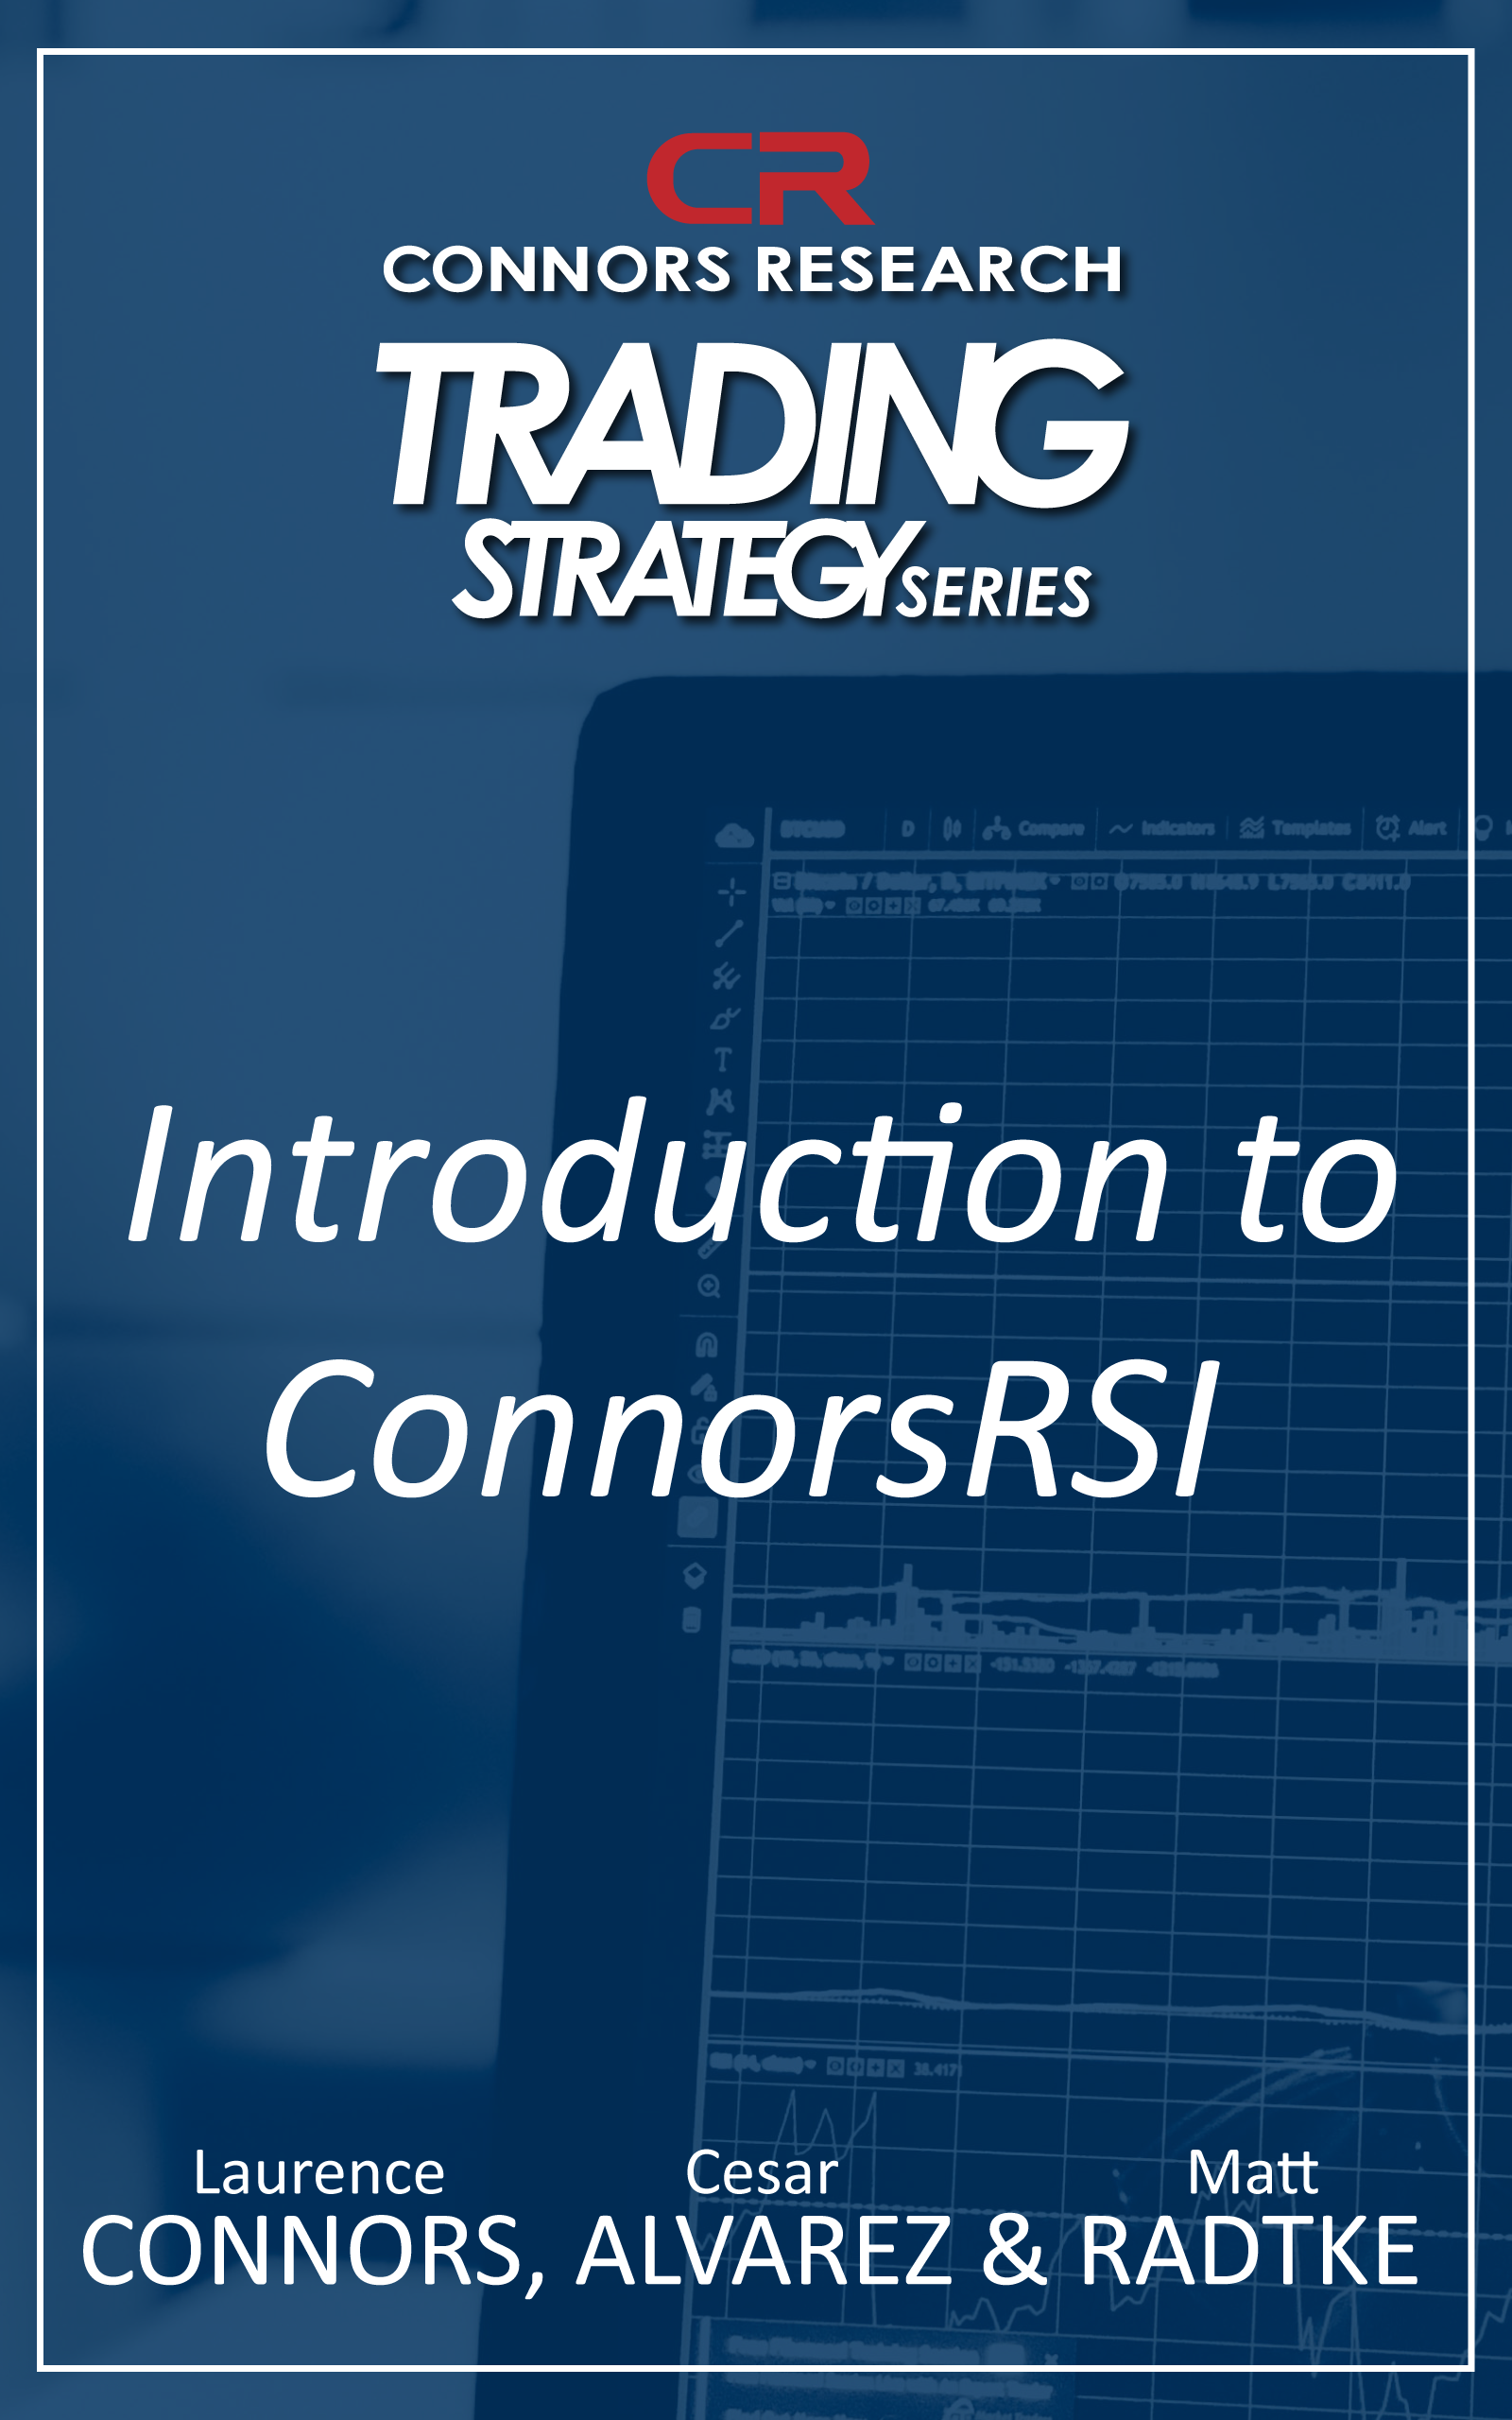 Connors Research Trading Strategy Series: An Introduction to ConnorsRSI BOO-IRSI-D